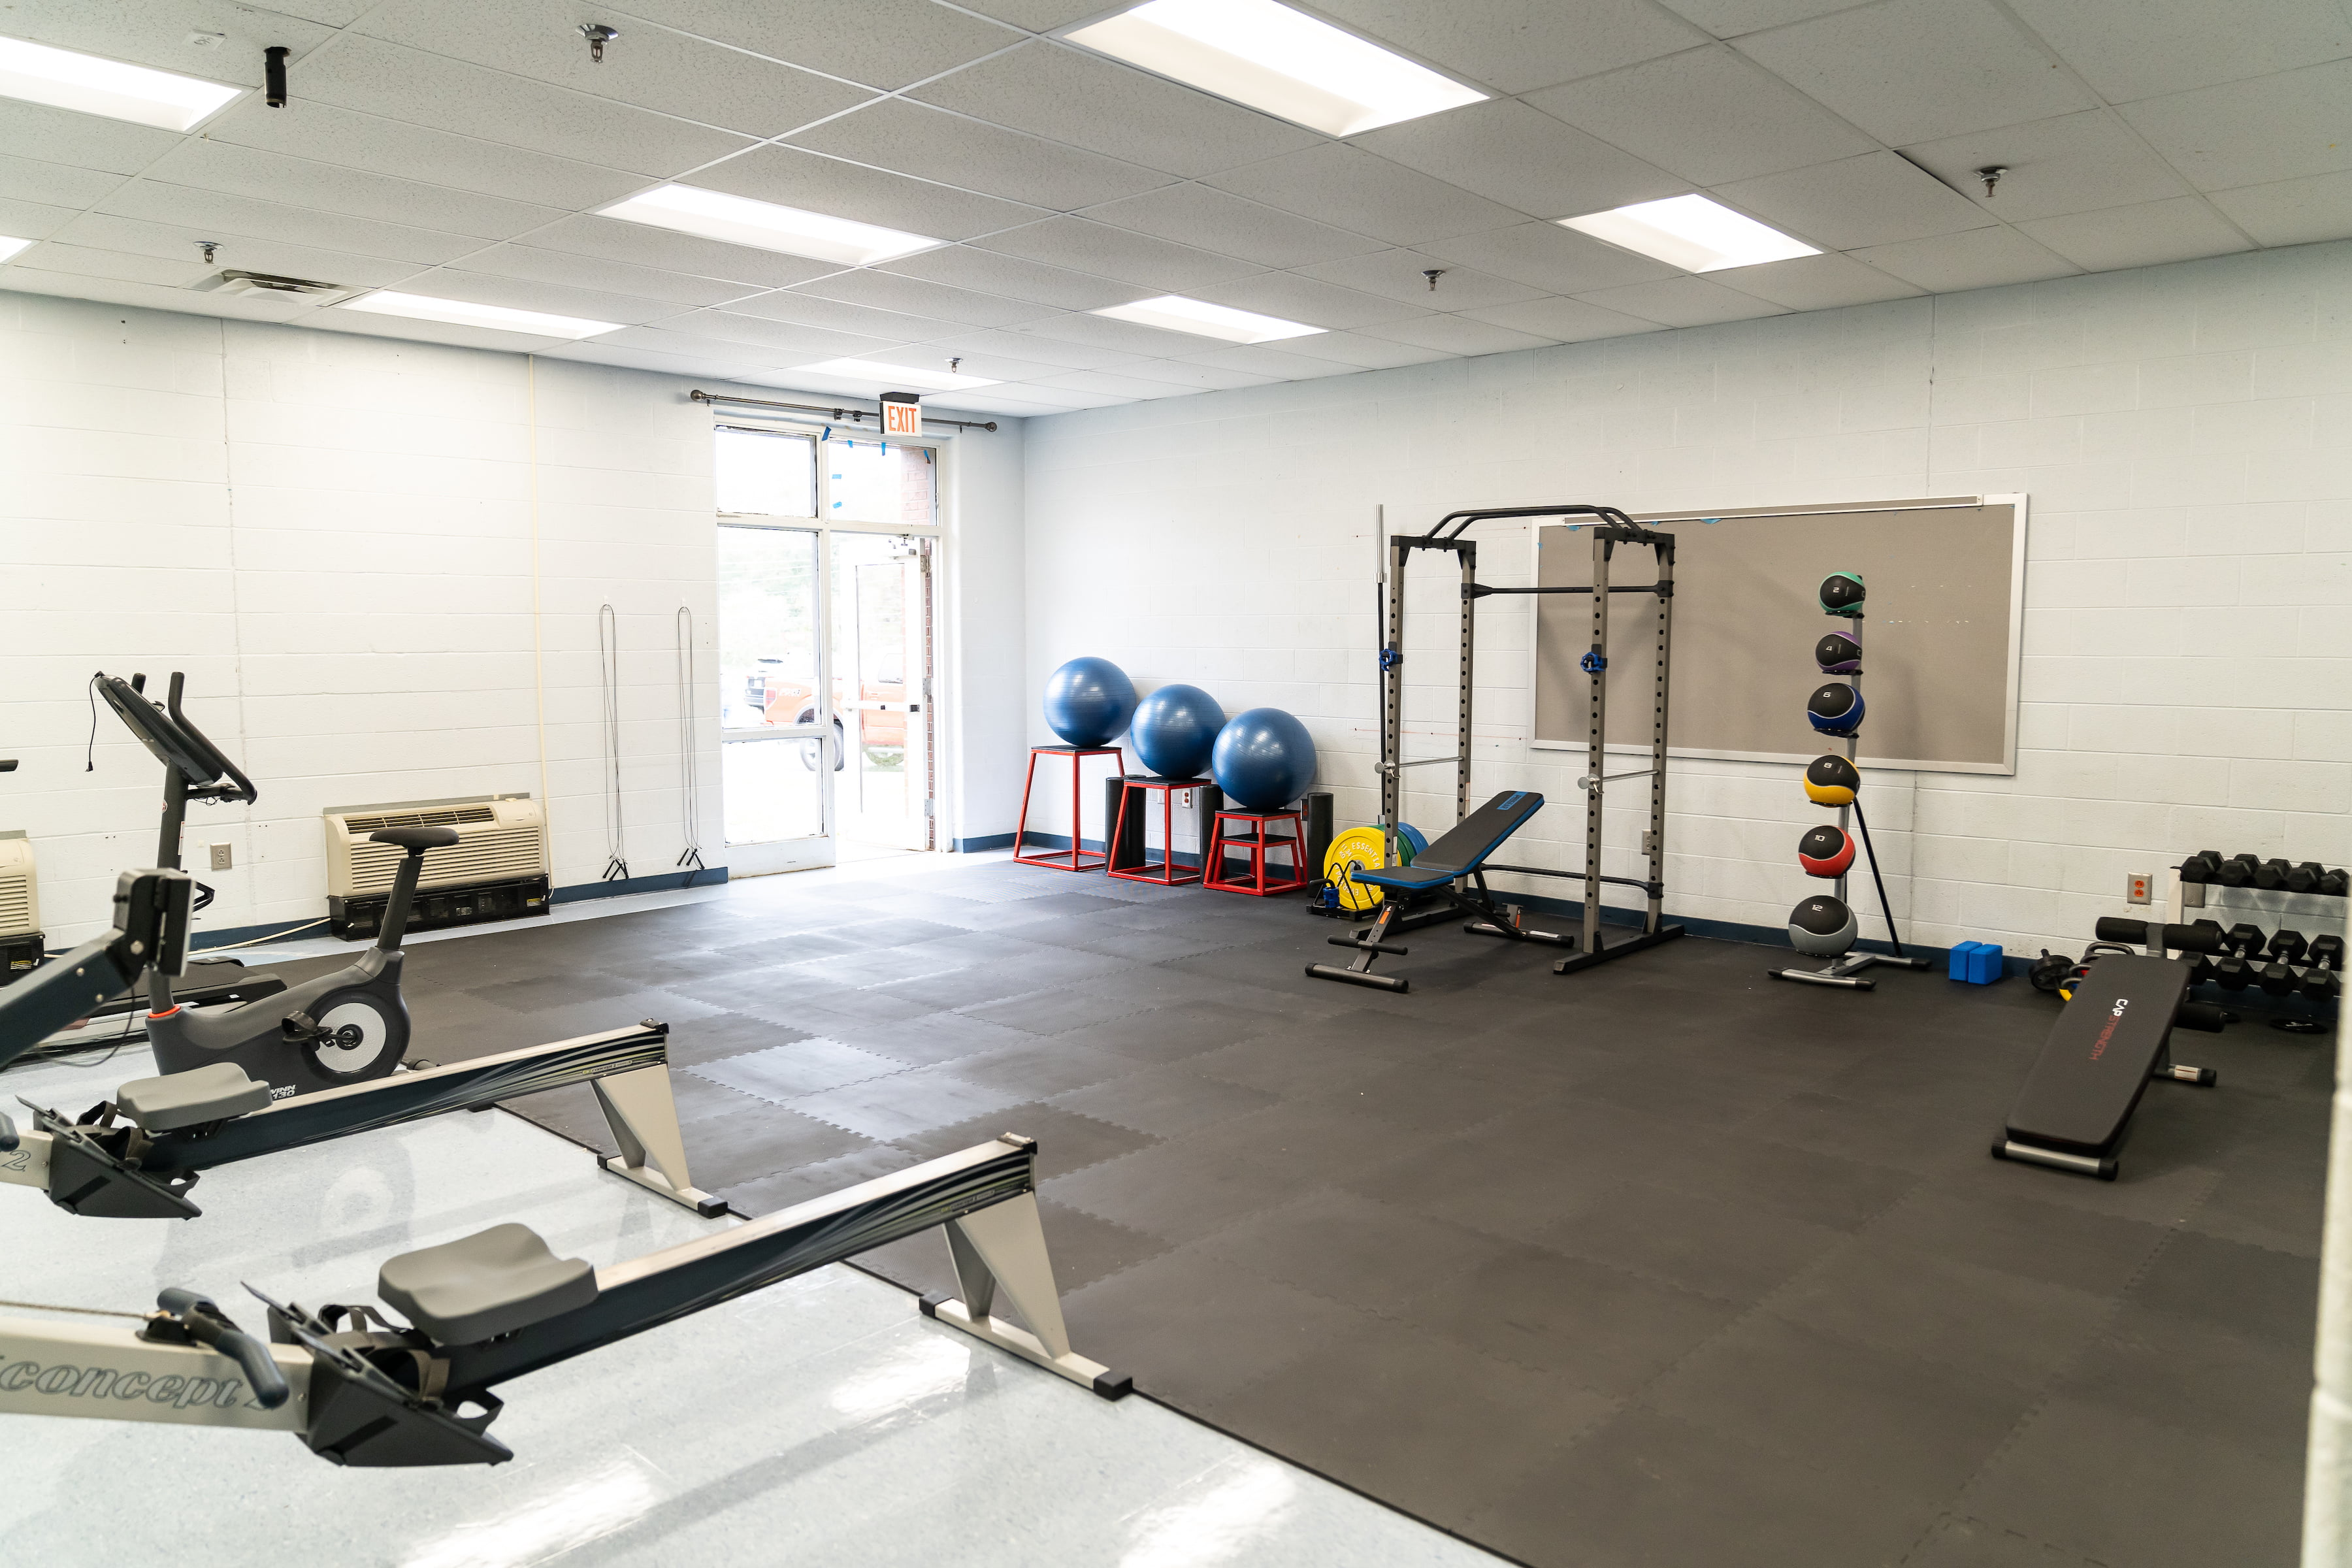 7 Springs Orthopedics Partners With Harpeth High School to Provide 'Health and Wellness' Room